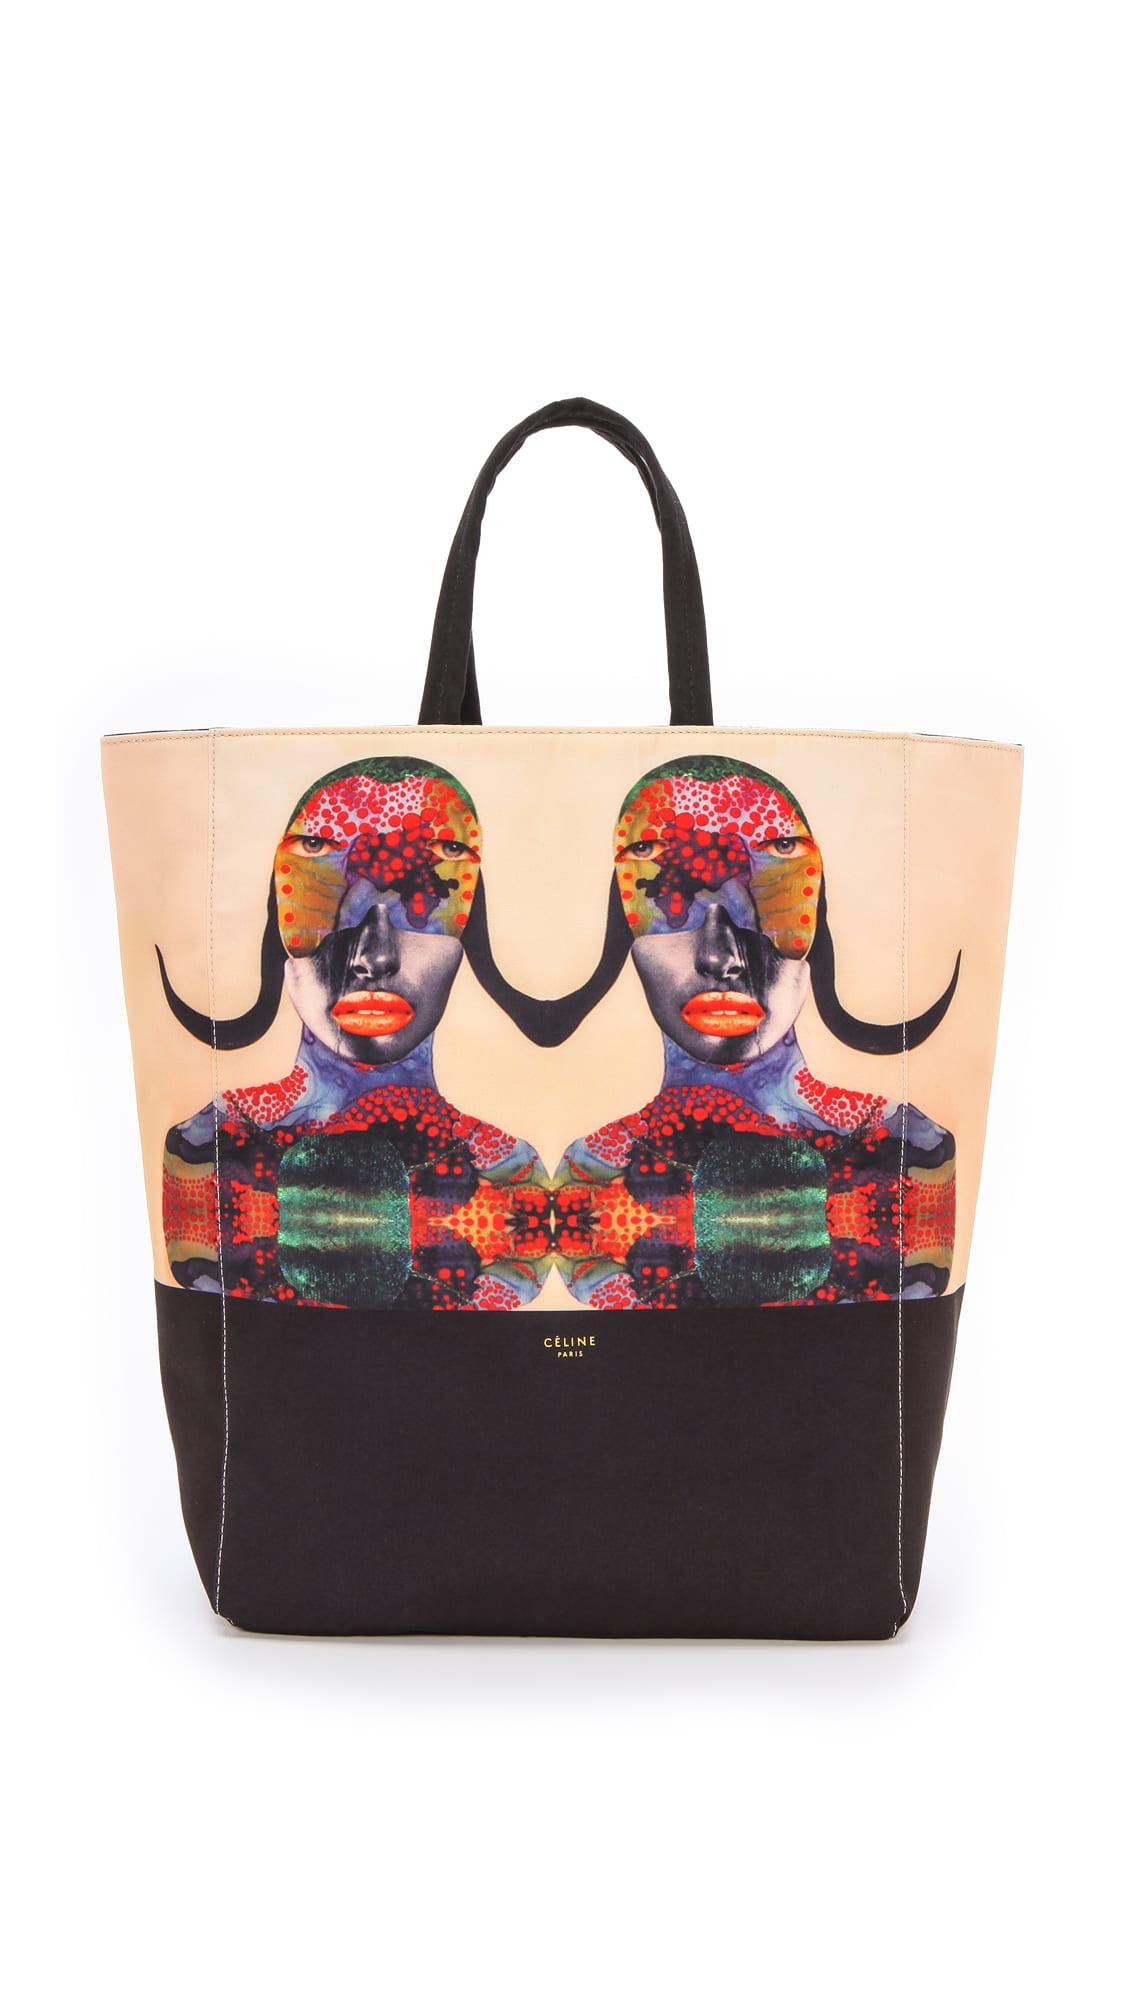 Limited Edition Celine \u0026#39;Born Free\u0026#39; Cabas Canvas Tote Bag for ...